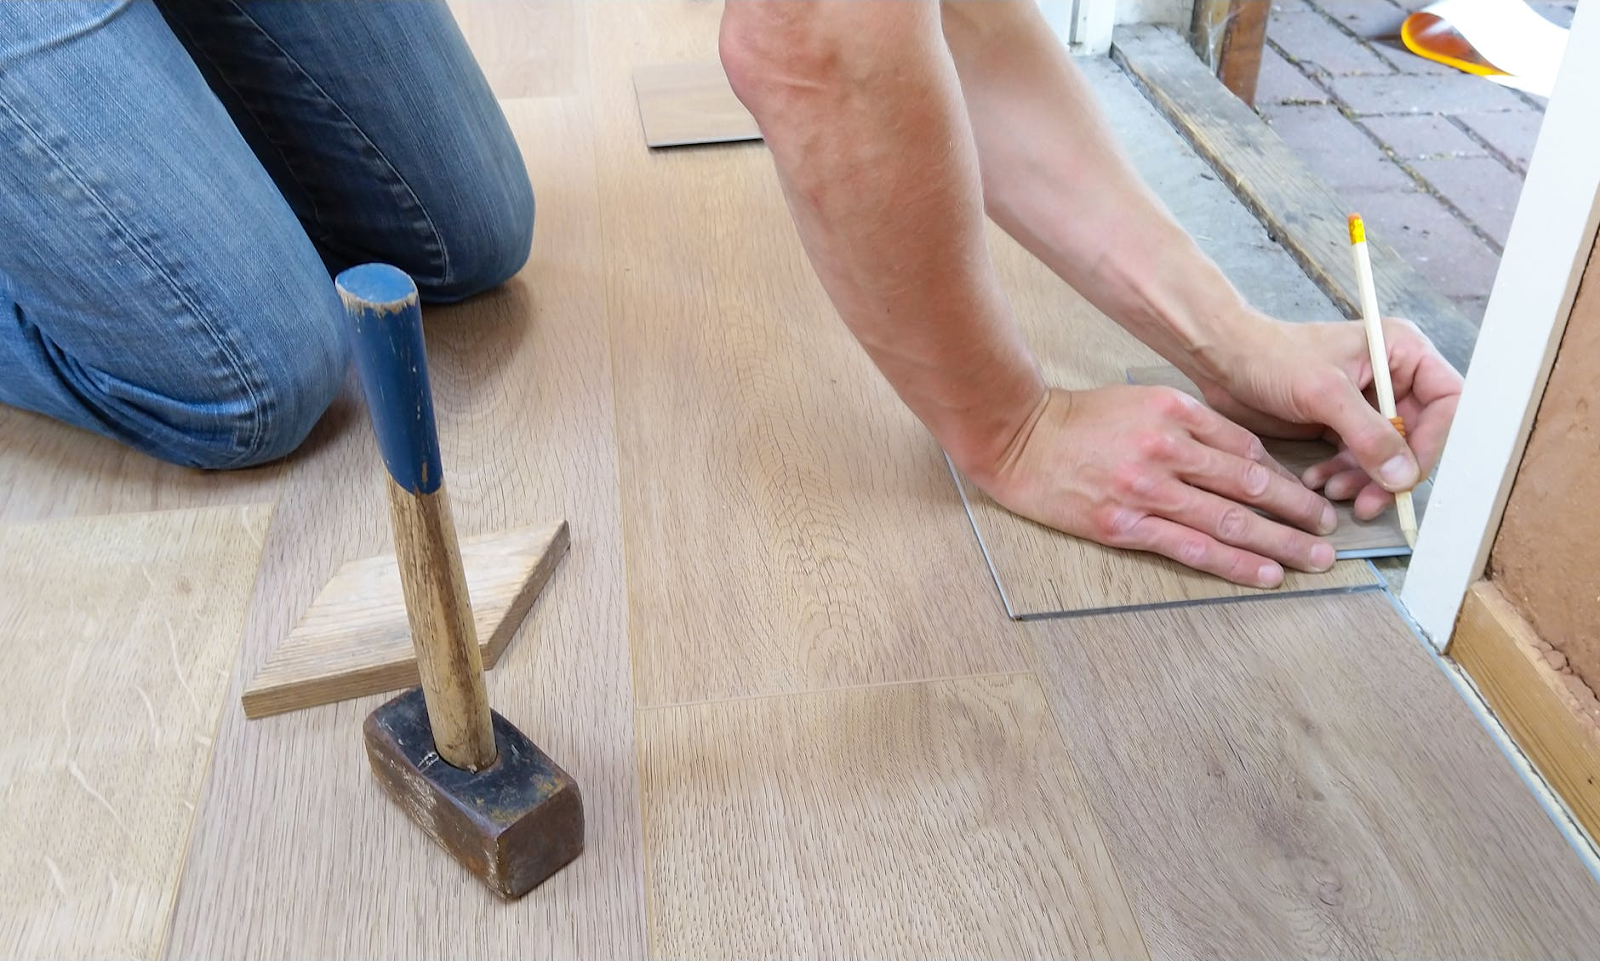 GETTING A NEW FLOORING